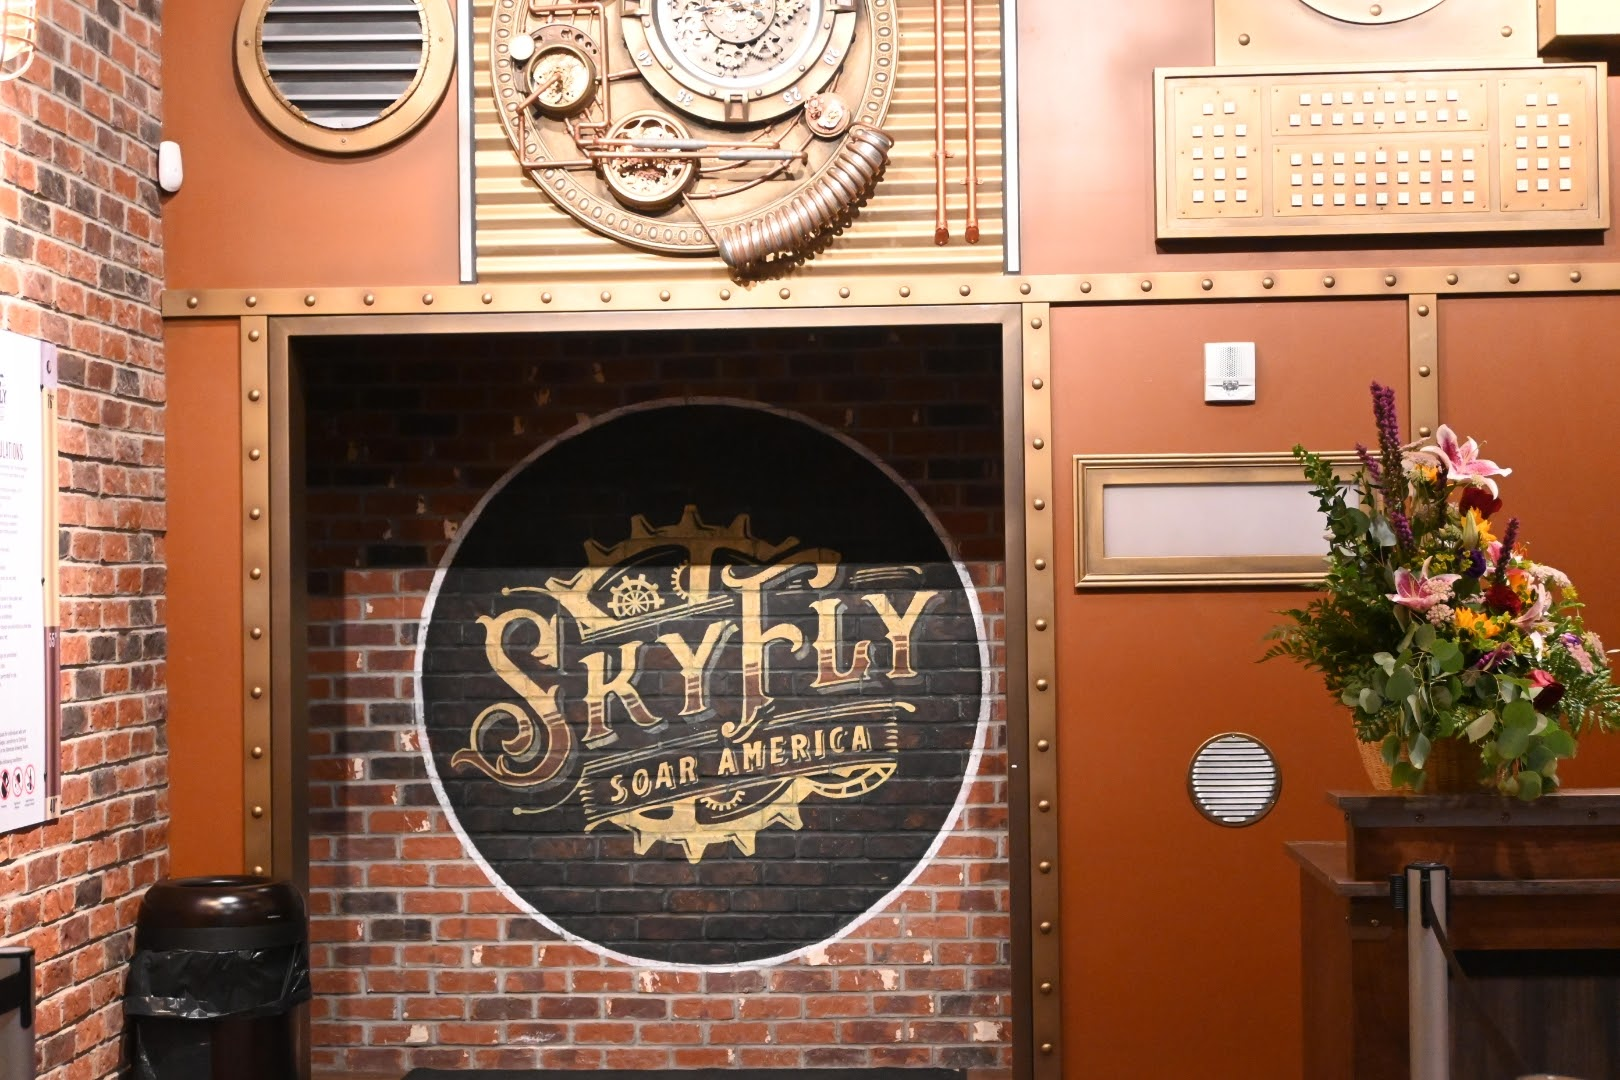 SkyFly: Soar America at The Island in Pigeon Forge, TN